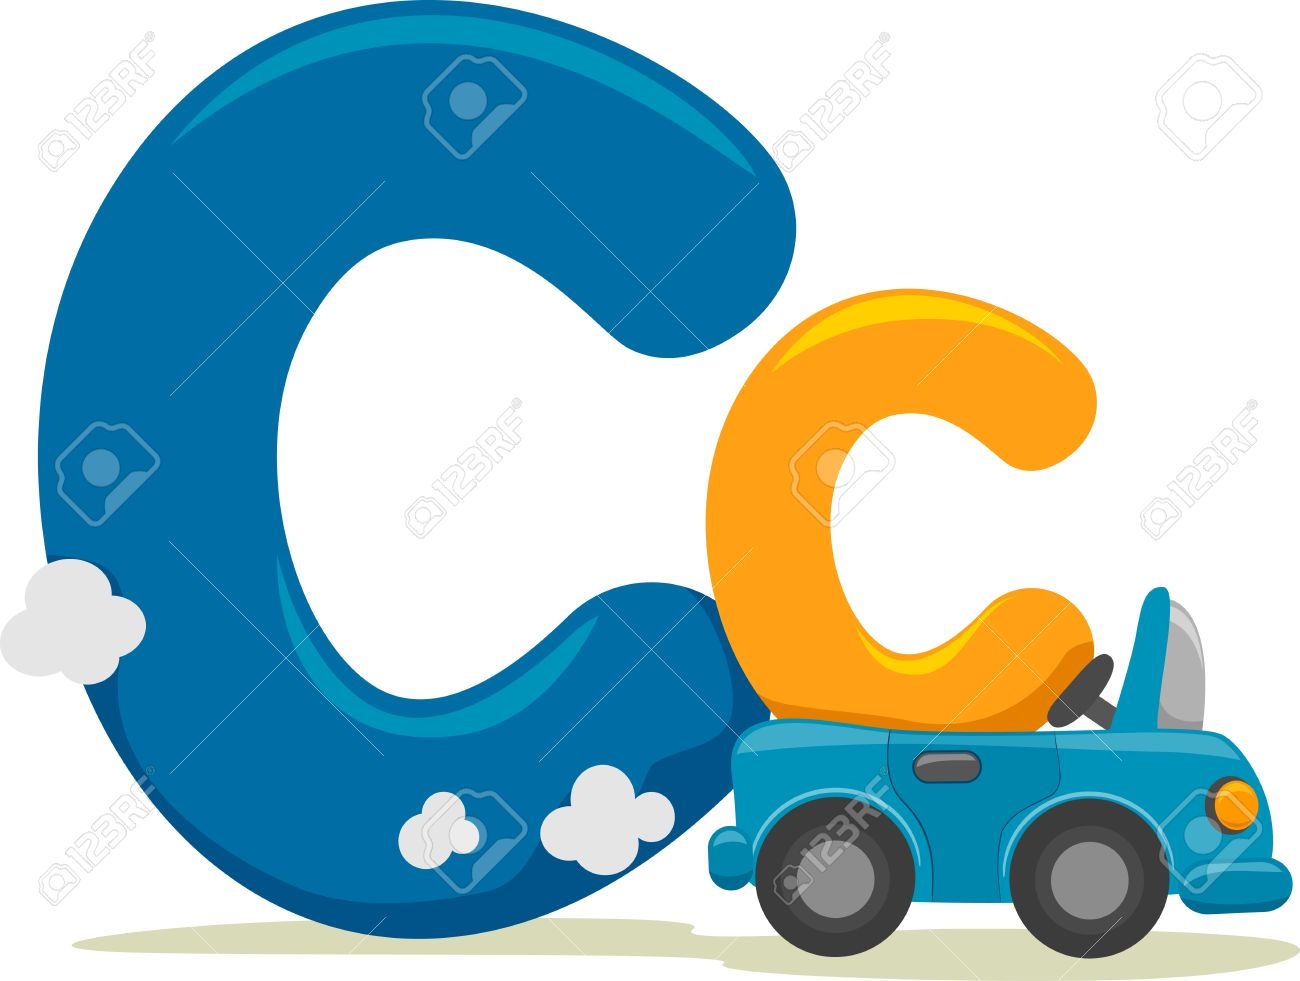 Illustration Featuring The Letter C Stock Photo, Picture And ... jpg freeuse stock